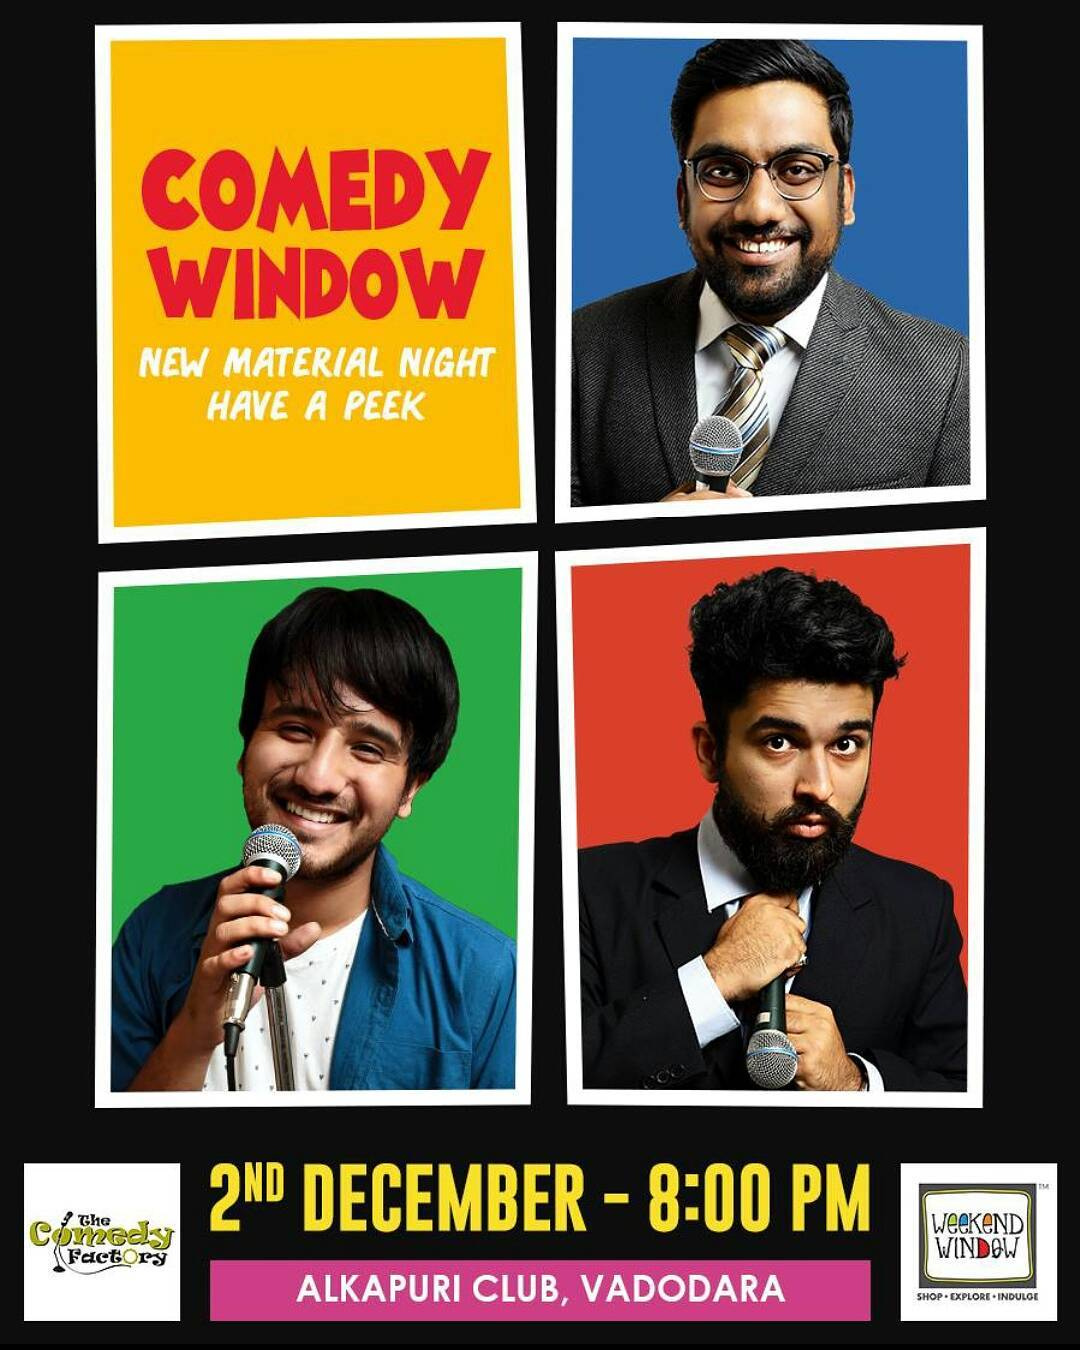 I am performing Stand up comedy tomorrow 2nd December for this with @thecomedyfactoryindia at Alkapuri Club and on 3rd December Sunday I am performing live music along with @siddharth_shastri26 at the same venue same time!8PM  Aajao Barodians :) #weekendwindow#thecomedyfactory#outrovadodara#baroda#barodian#barodians#thingstodoinvadodara#vadodara#ourvadodara#vadodara_baroda#vadodara_igers#barodadiaries#livemusic#standupcomedy#thingstodoinbaroda